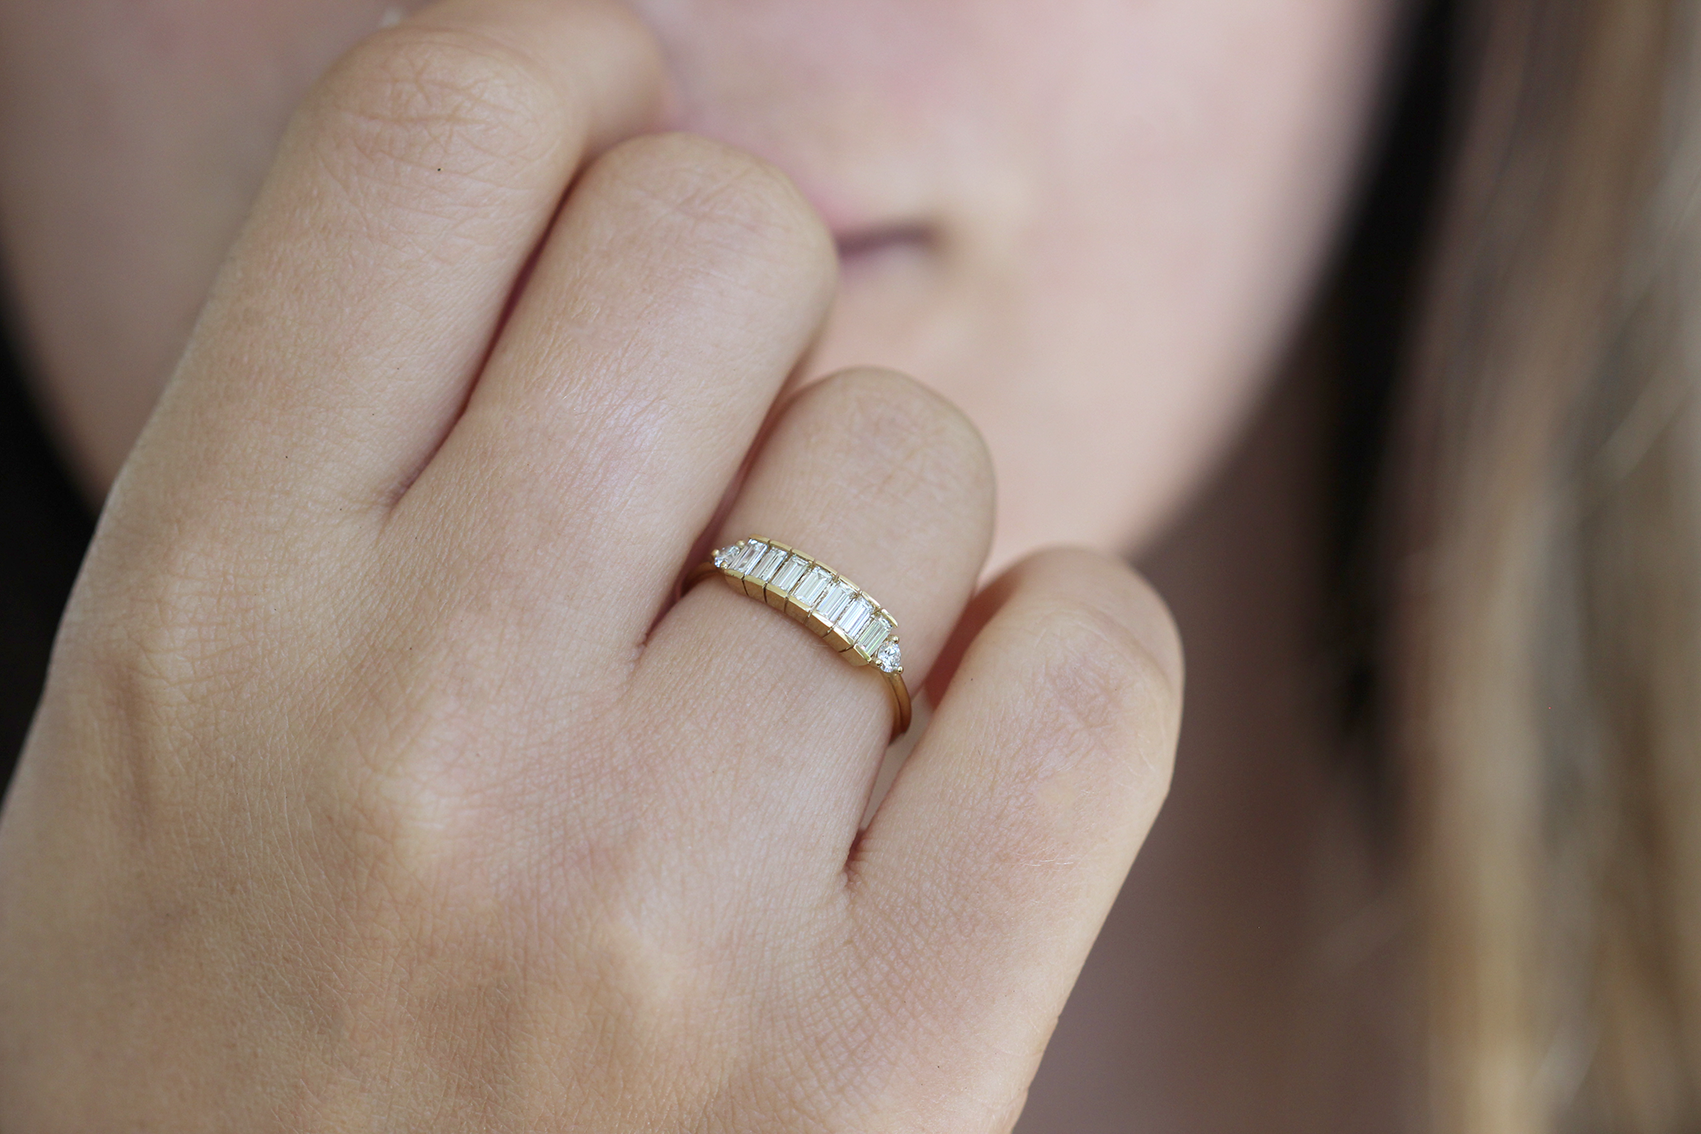 Dainty Baguette Engagement Ring on finger